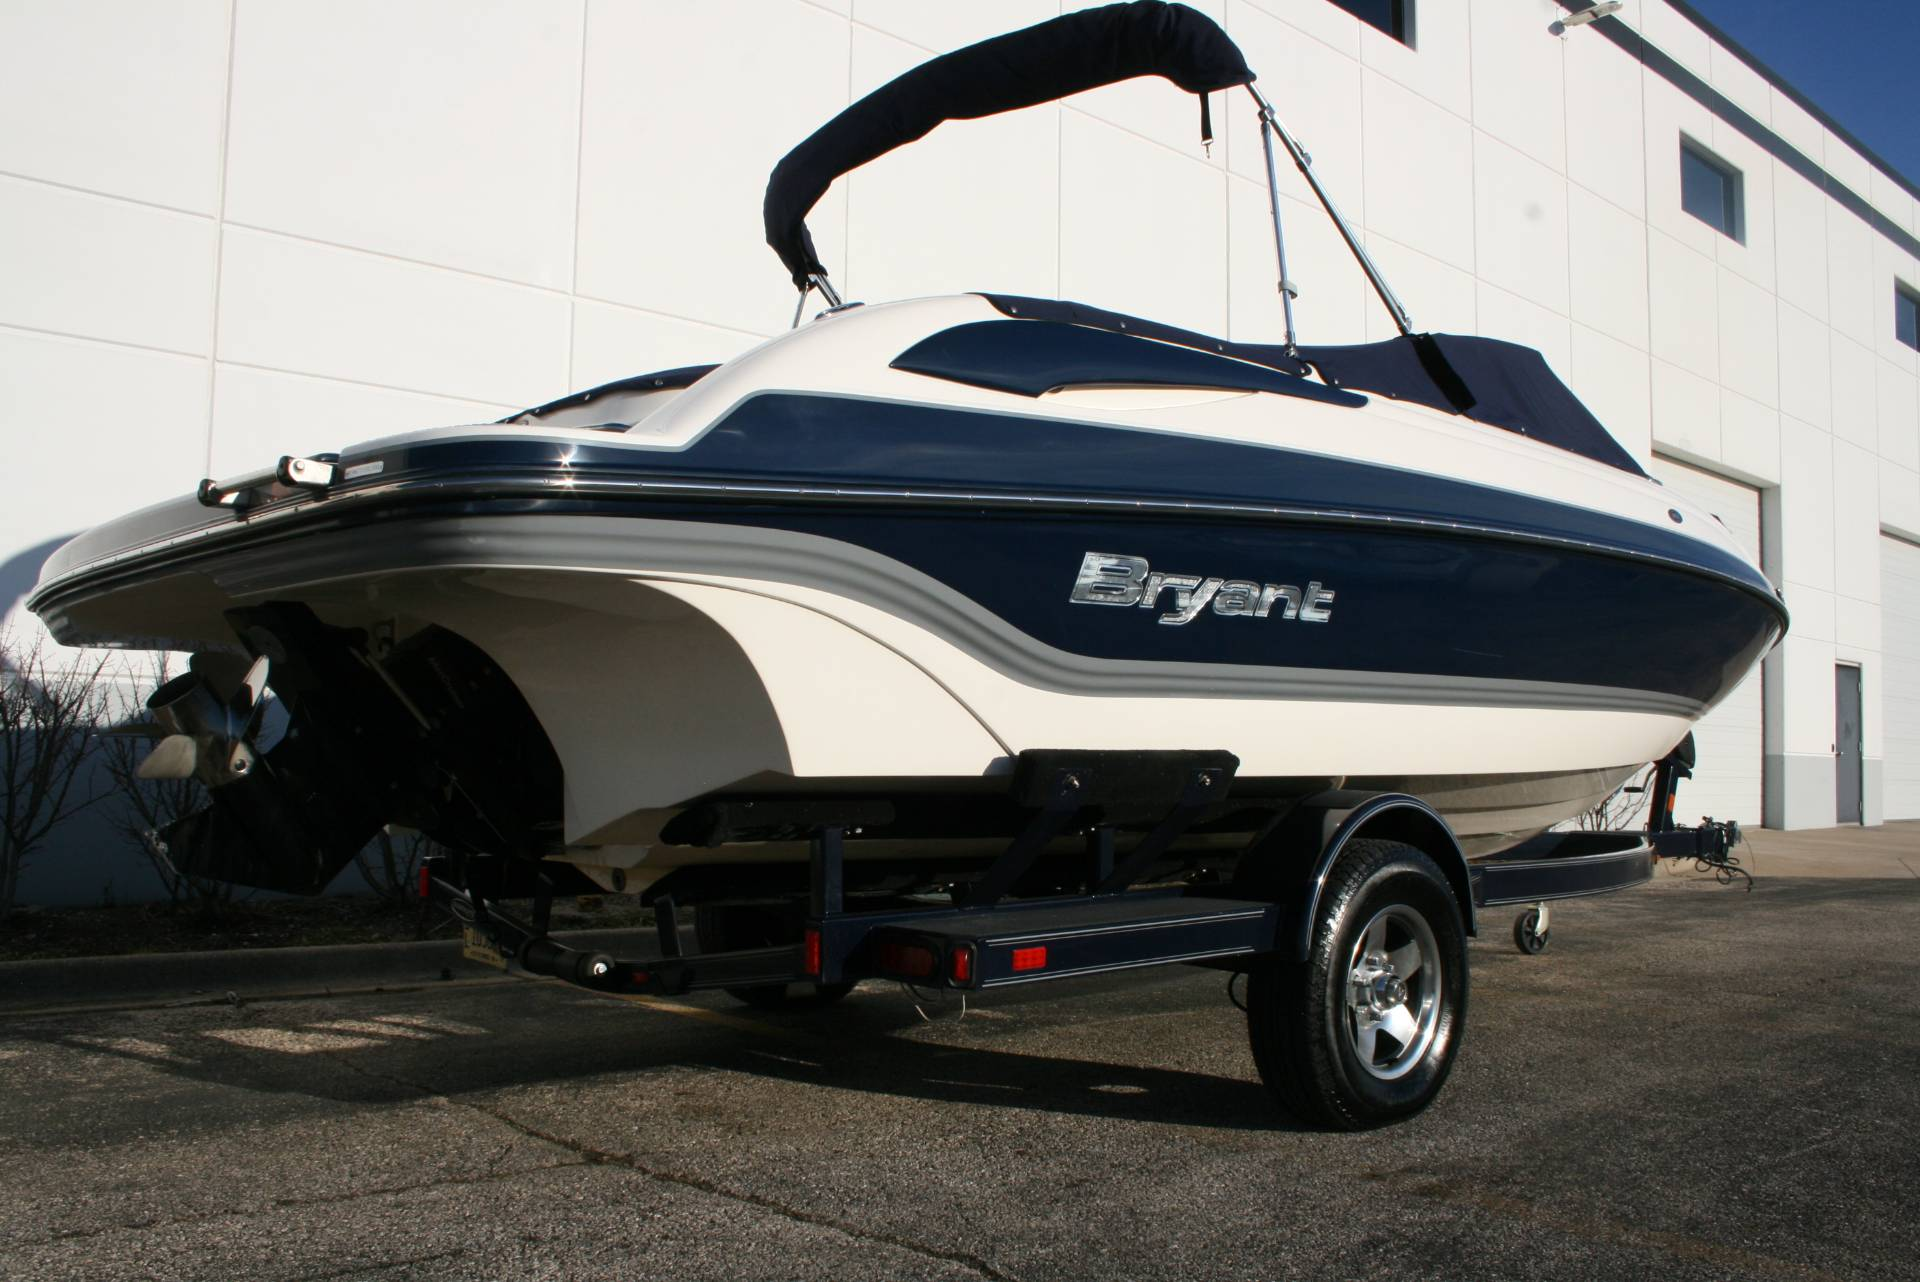 2008 Bryant 233 in Lake Zurich, Illinois